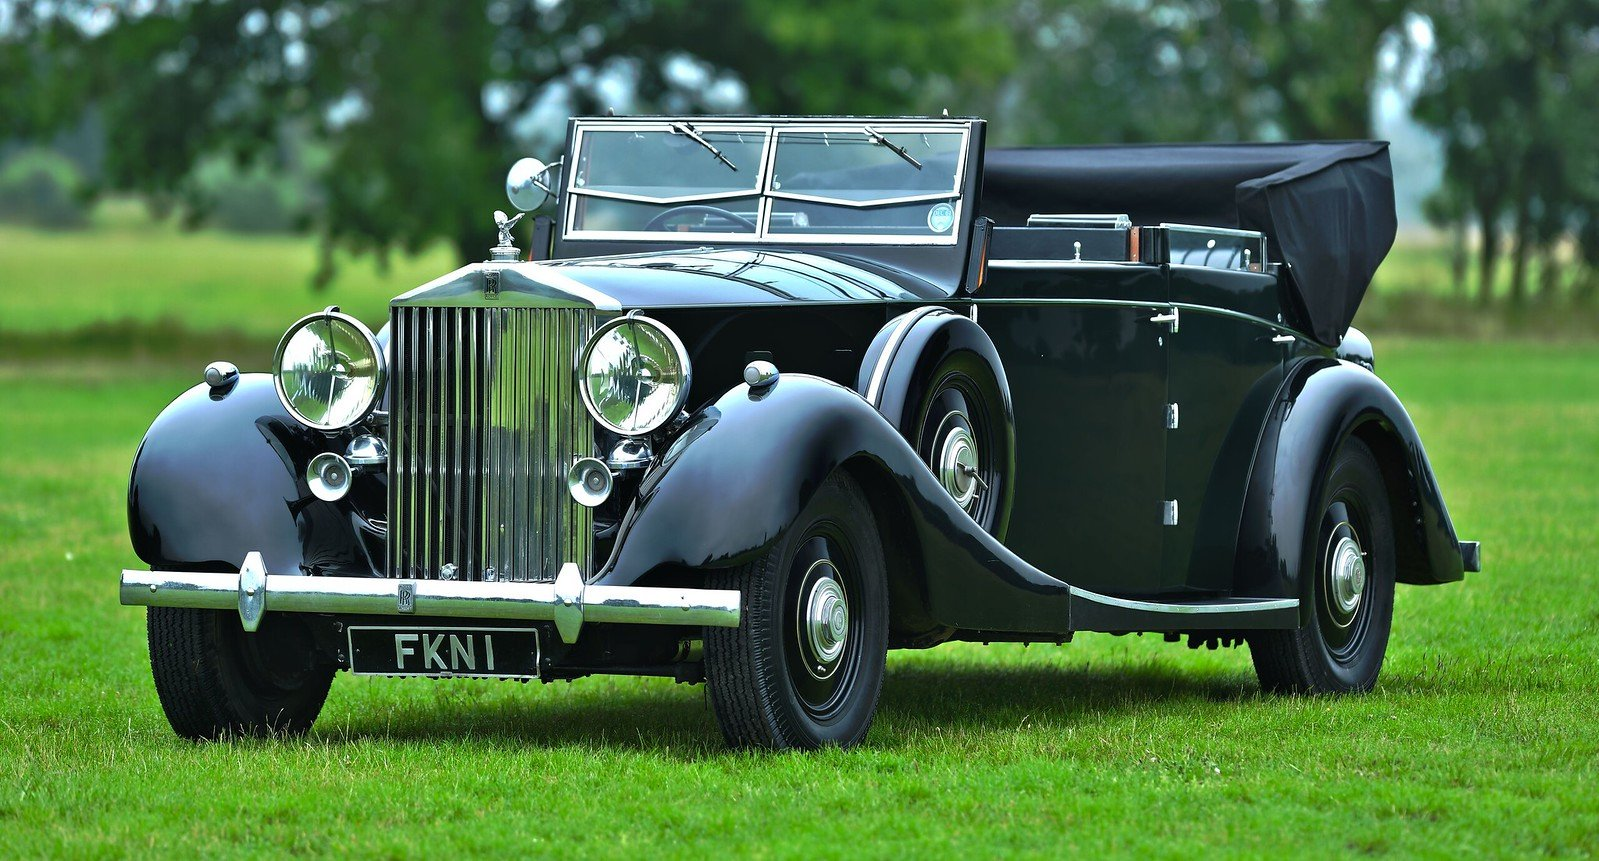 1938 Rolls-Royce Phantom III Four Light Cabriolet Coachwork  For Sale (picture 1 of 6)